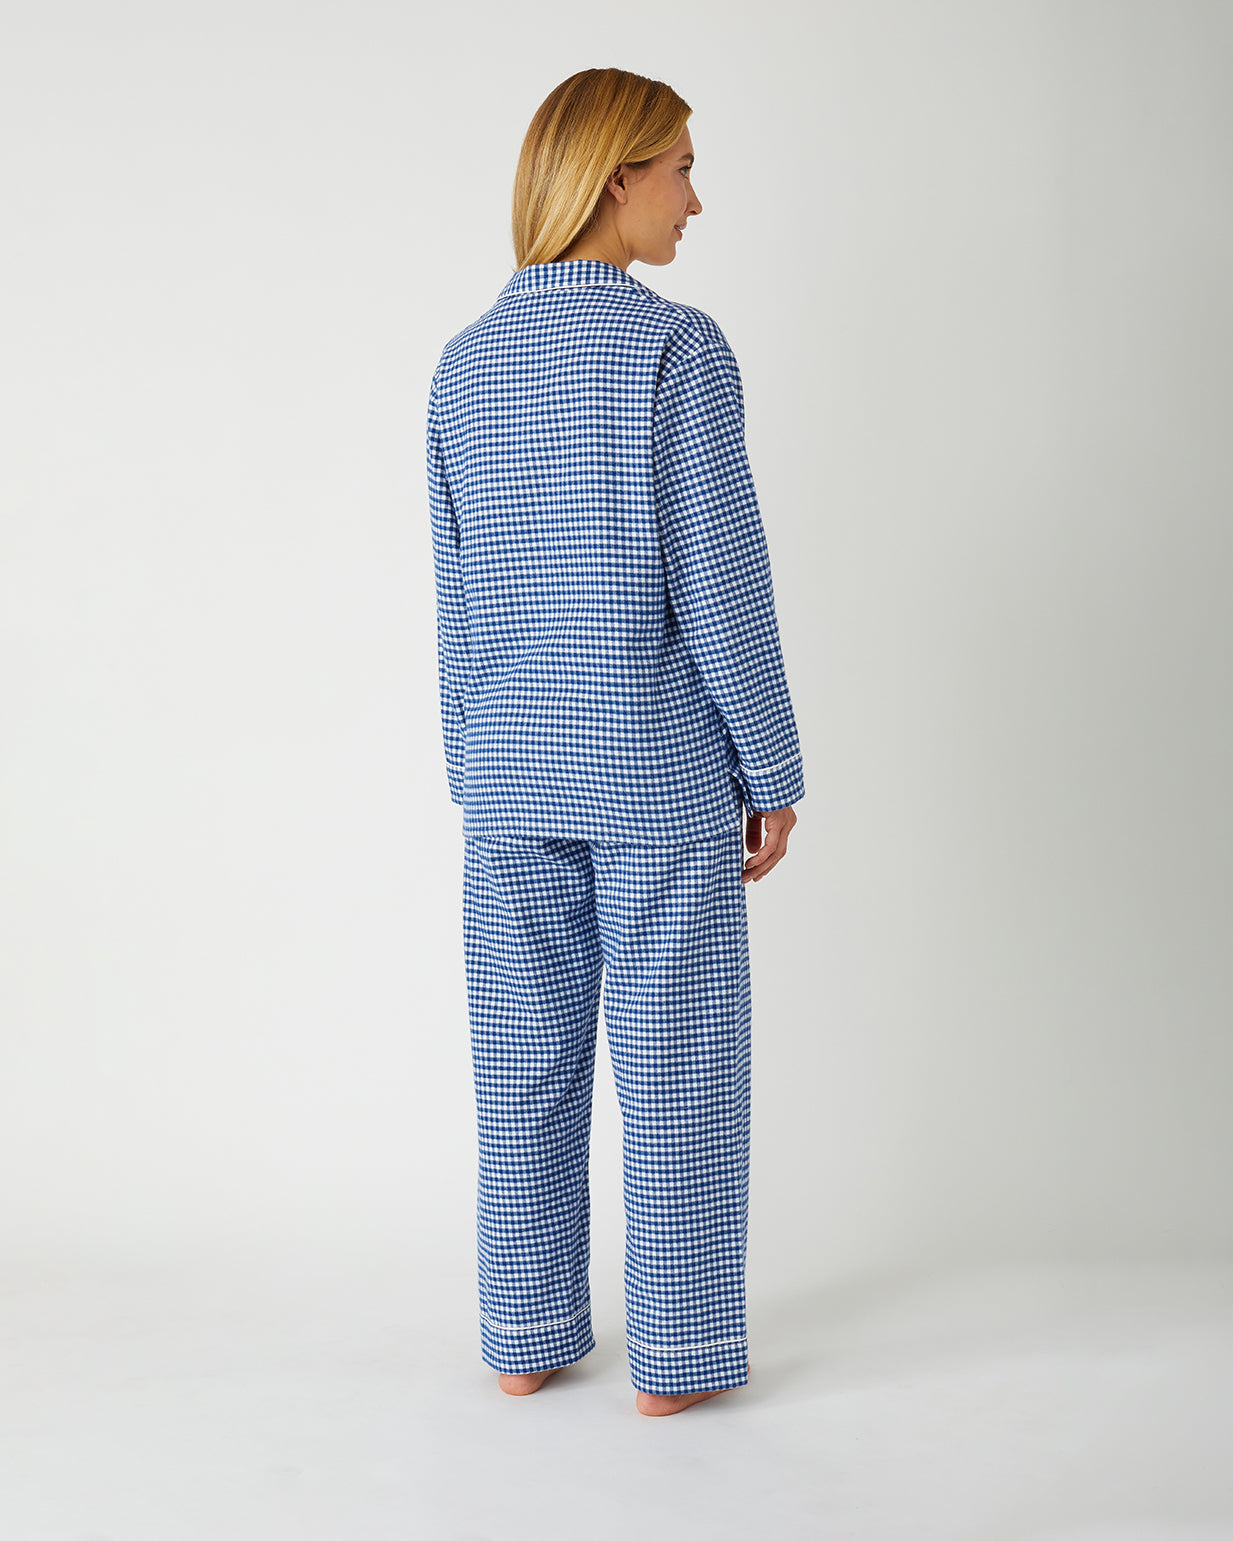 Women's Brushed Cotton Pyjamas - Navy Gingham